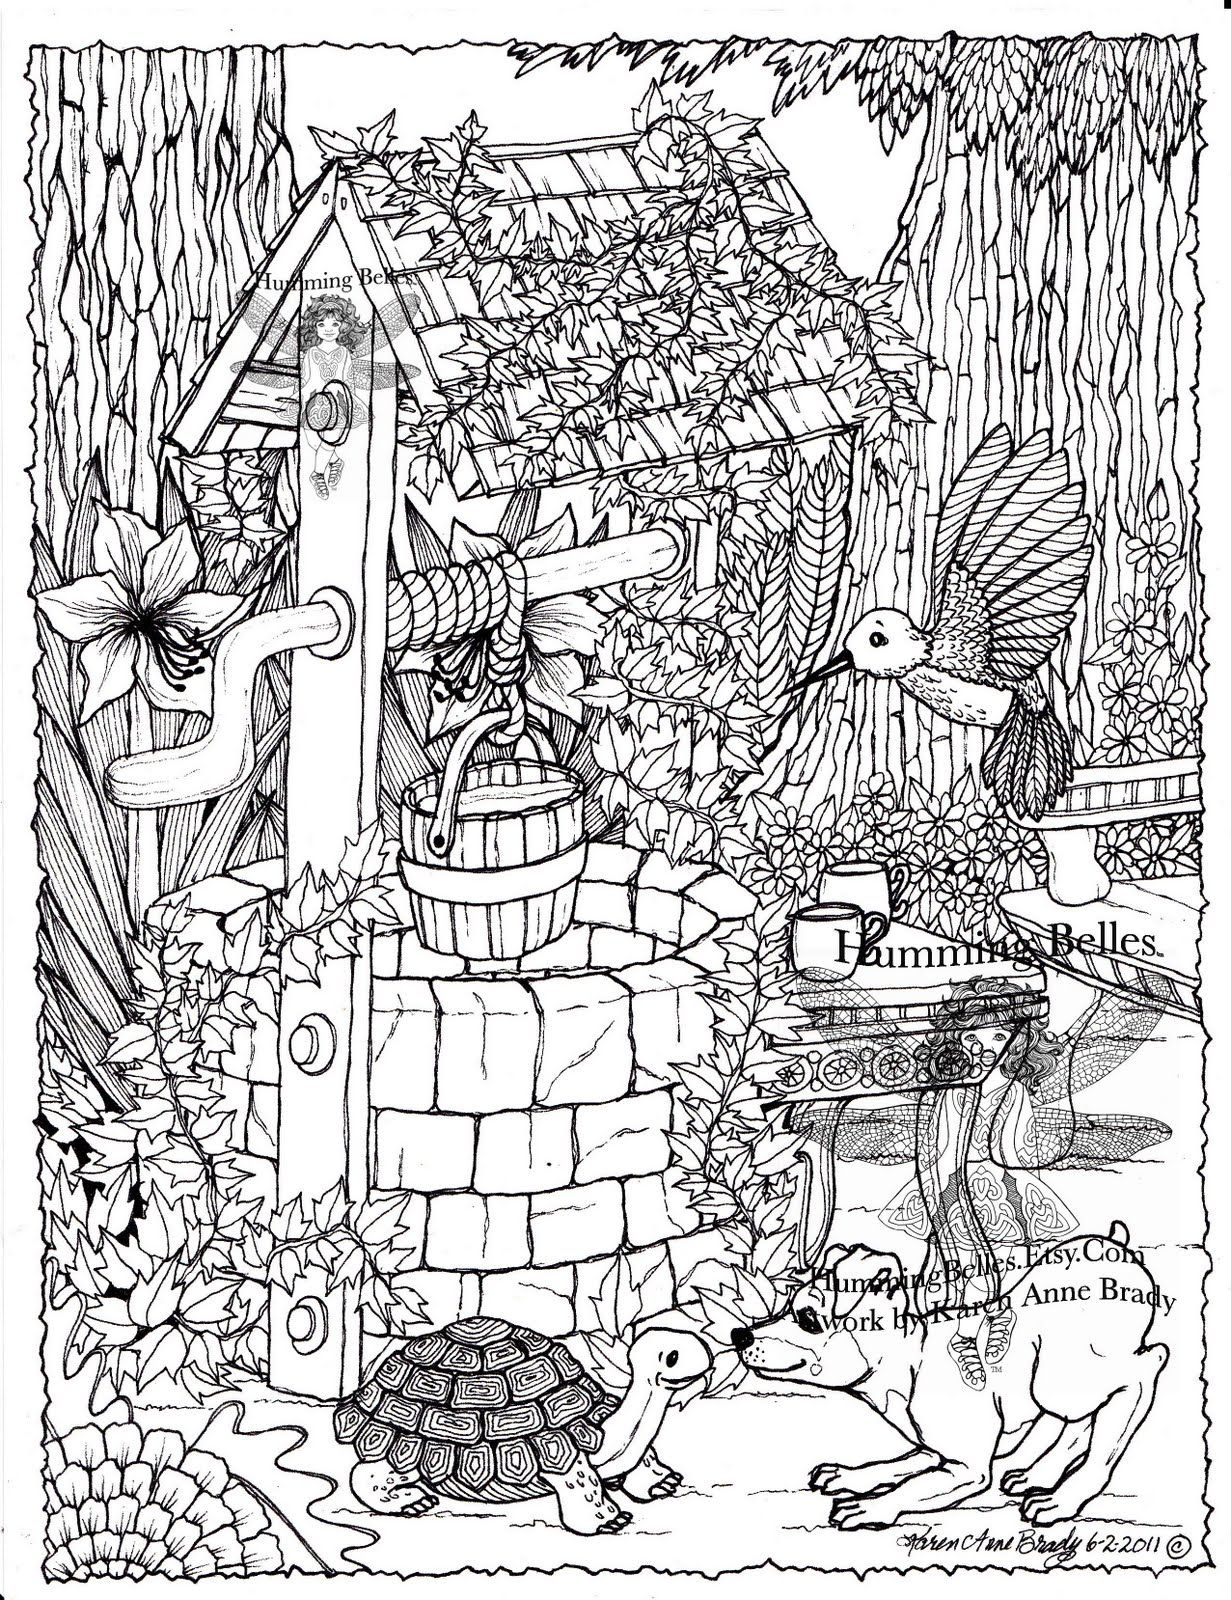 humming belles coloring pages - Sunken Pirate Ship Coloring Pages